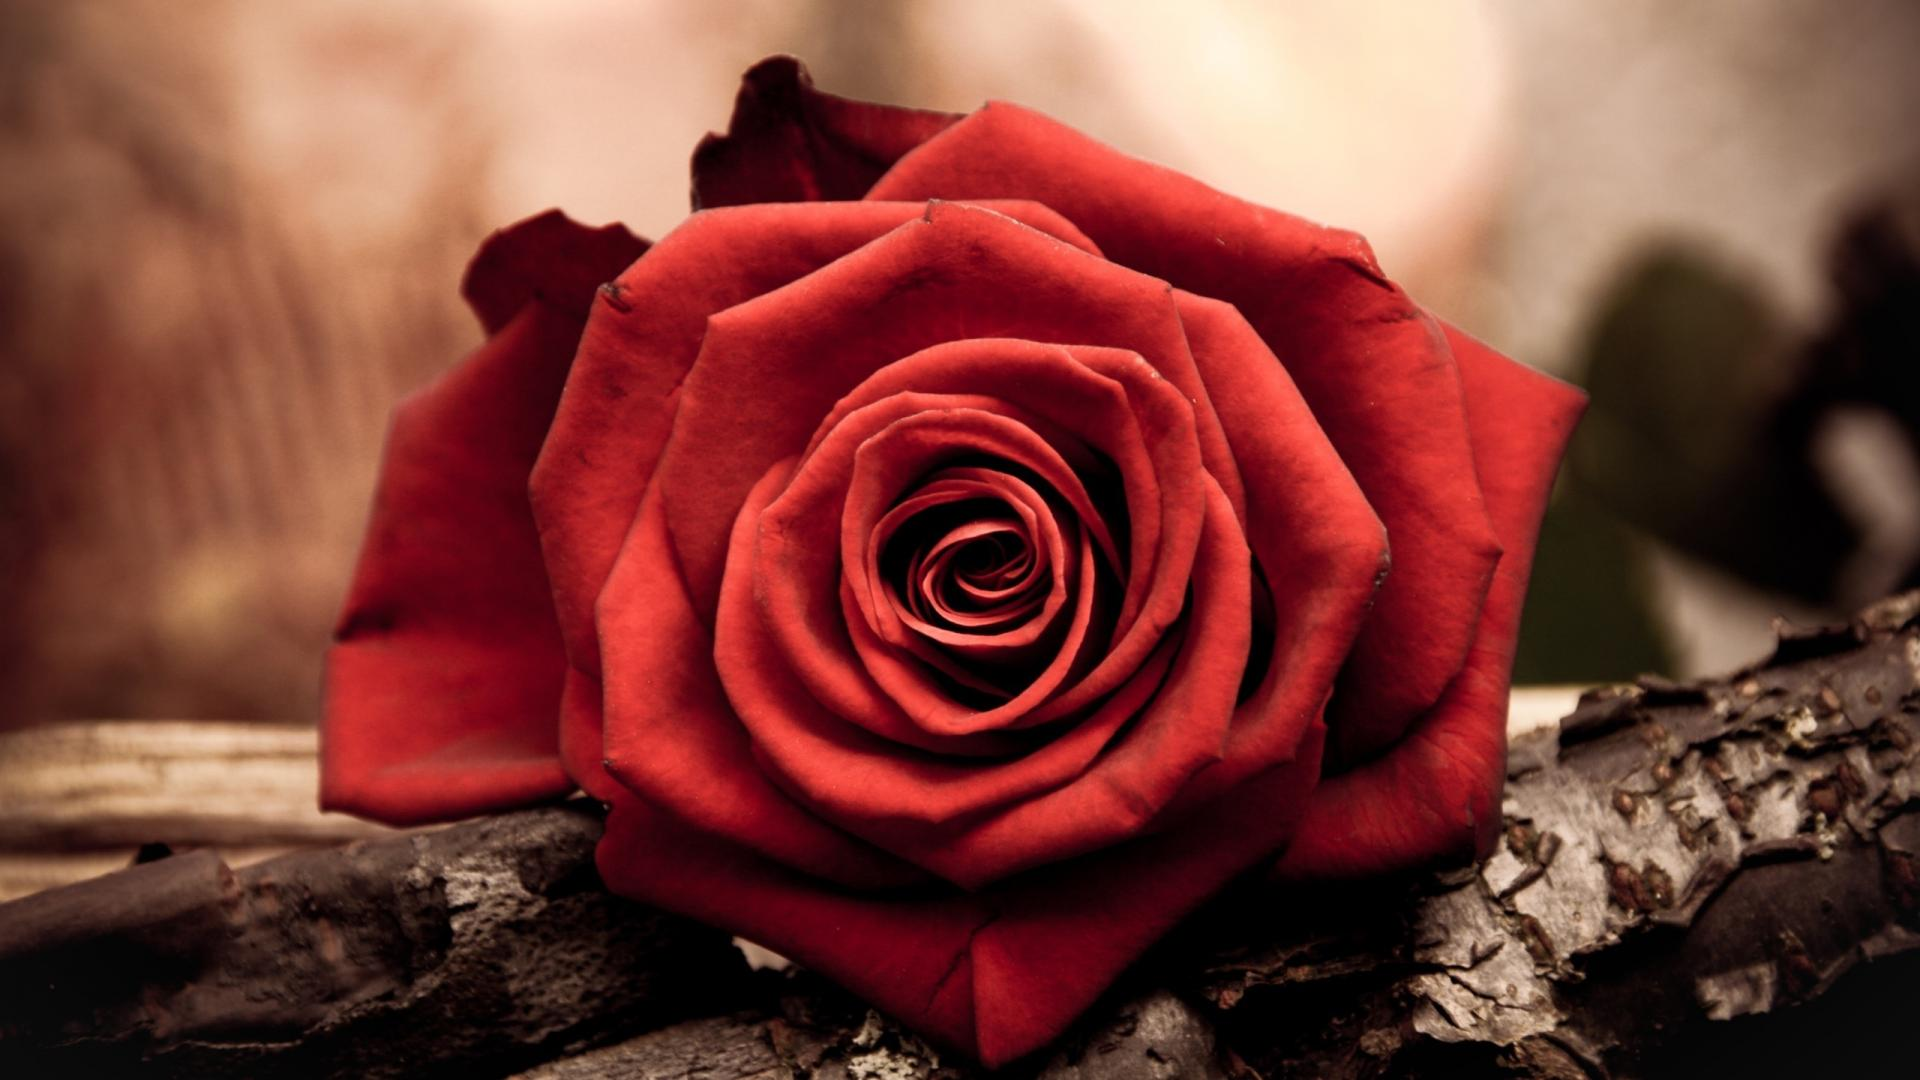 Free pictures of red flowers image freeuse stock Awesome Free Red Flowers HD Wallpaper Free Download image freeuse stock